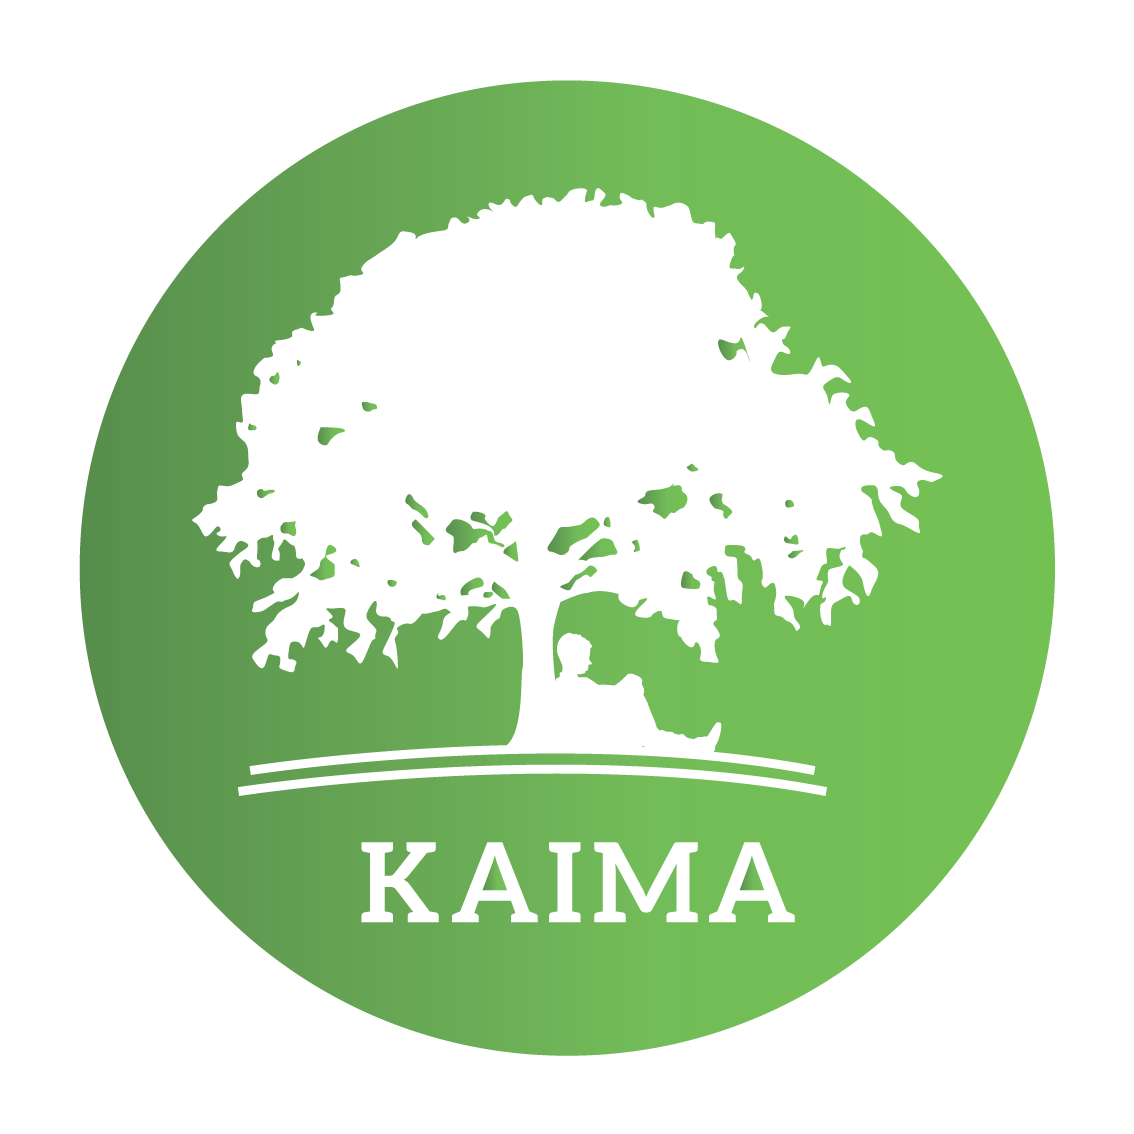 In Israel there are more than 30,000 boys and girls, some as young as 15-years-old, who have dropped out of school. Kaima's mission is to help these young kids turn their lives around through a multi-layered educational process combining hands-on organic farming, leadership development, business learning, and community development. -